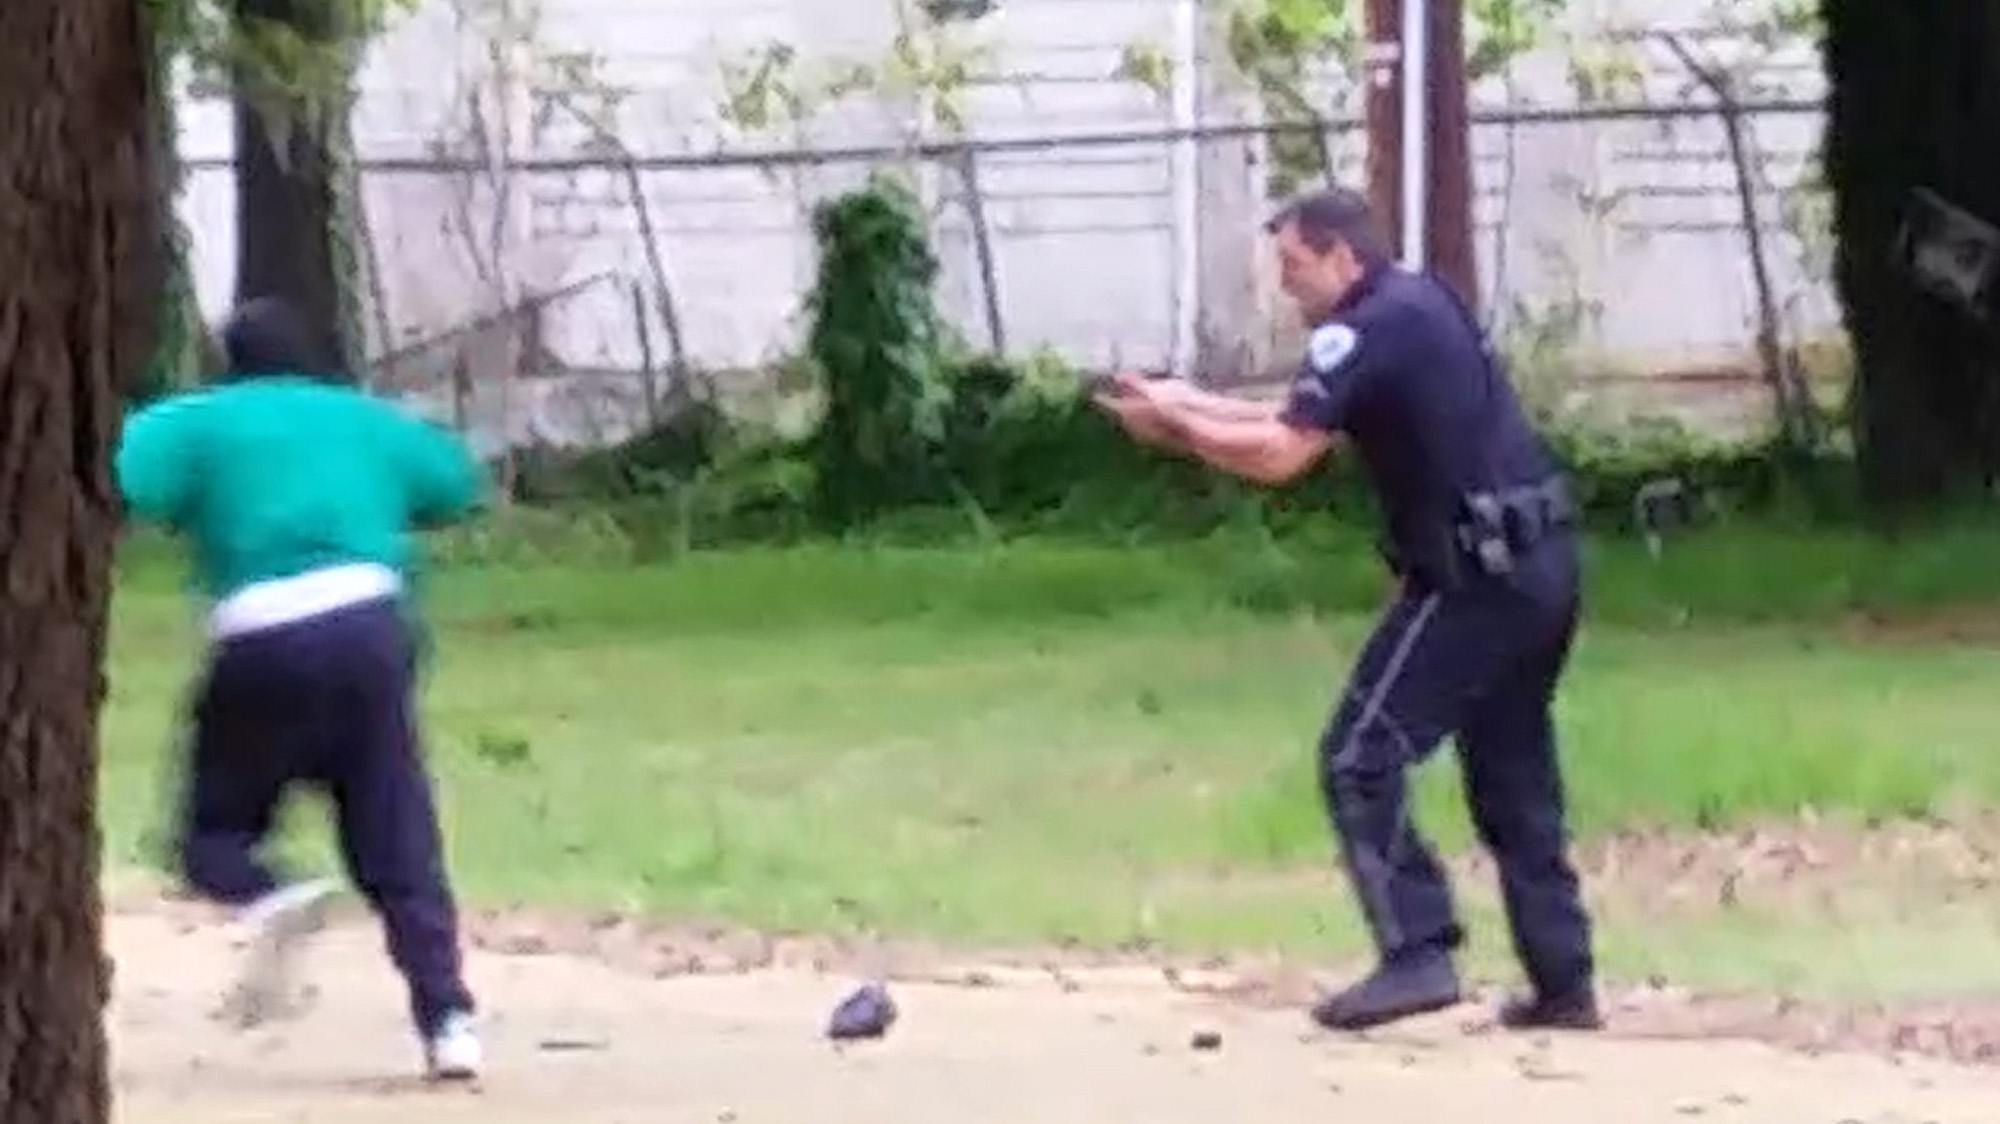 In this video frame Slager wields his Taser. Feidin Santana